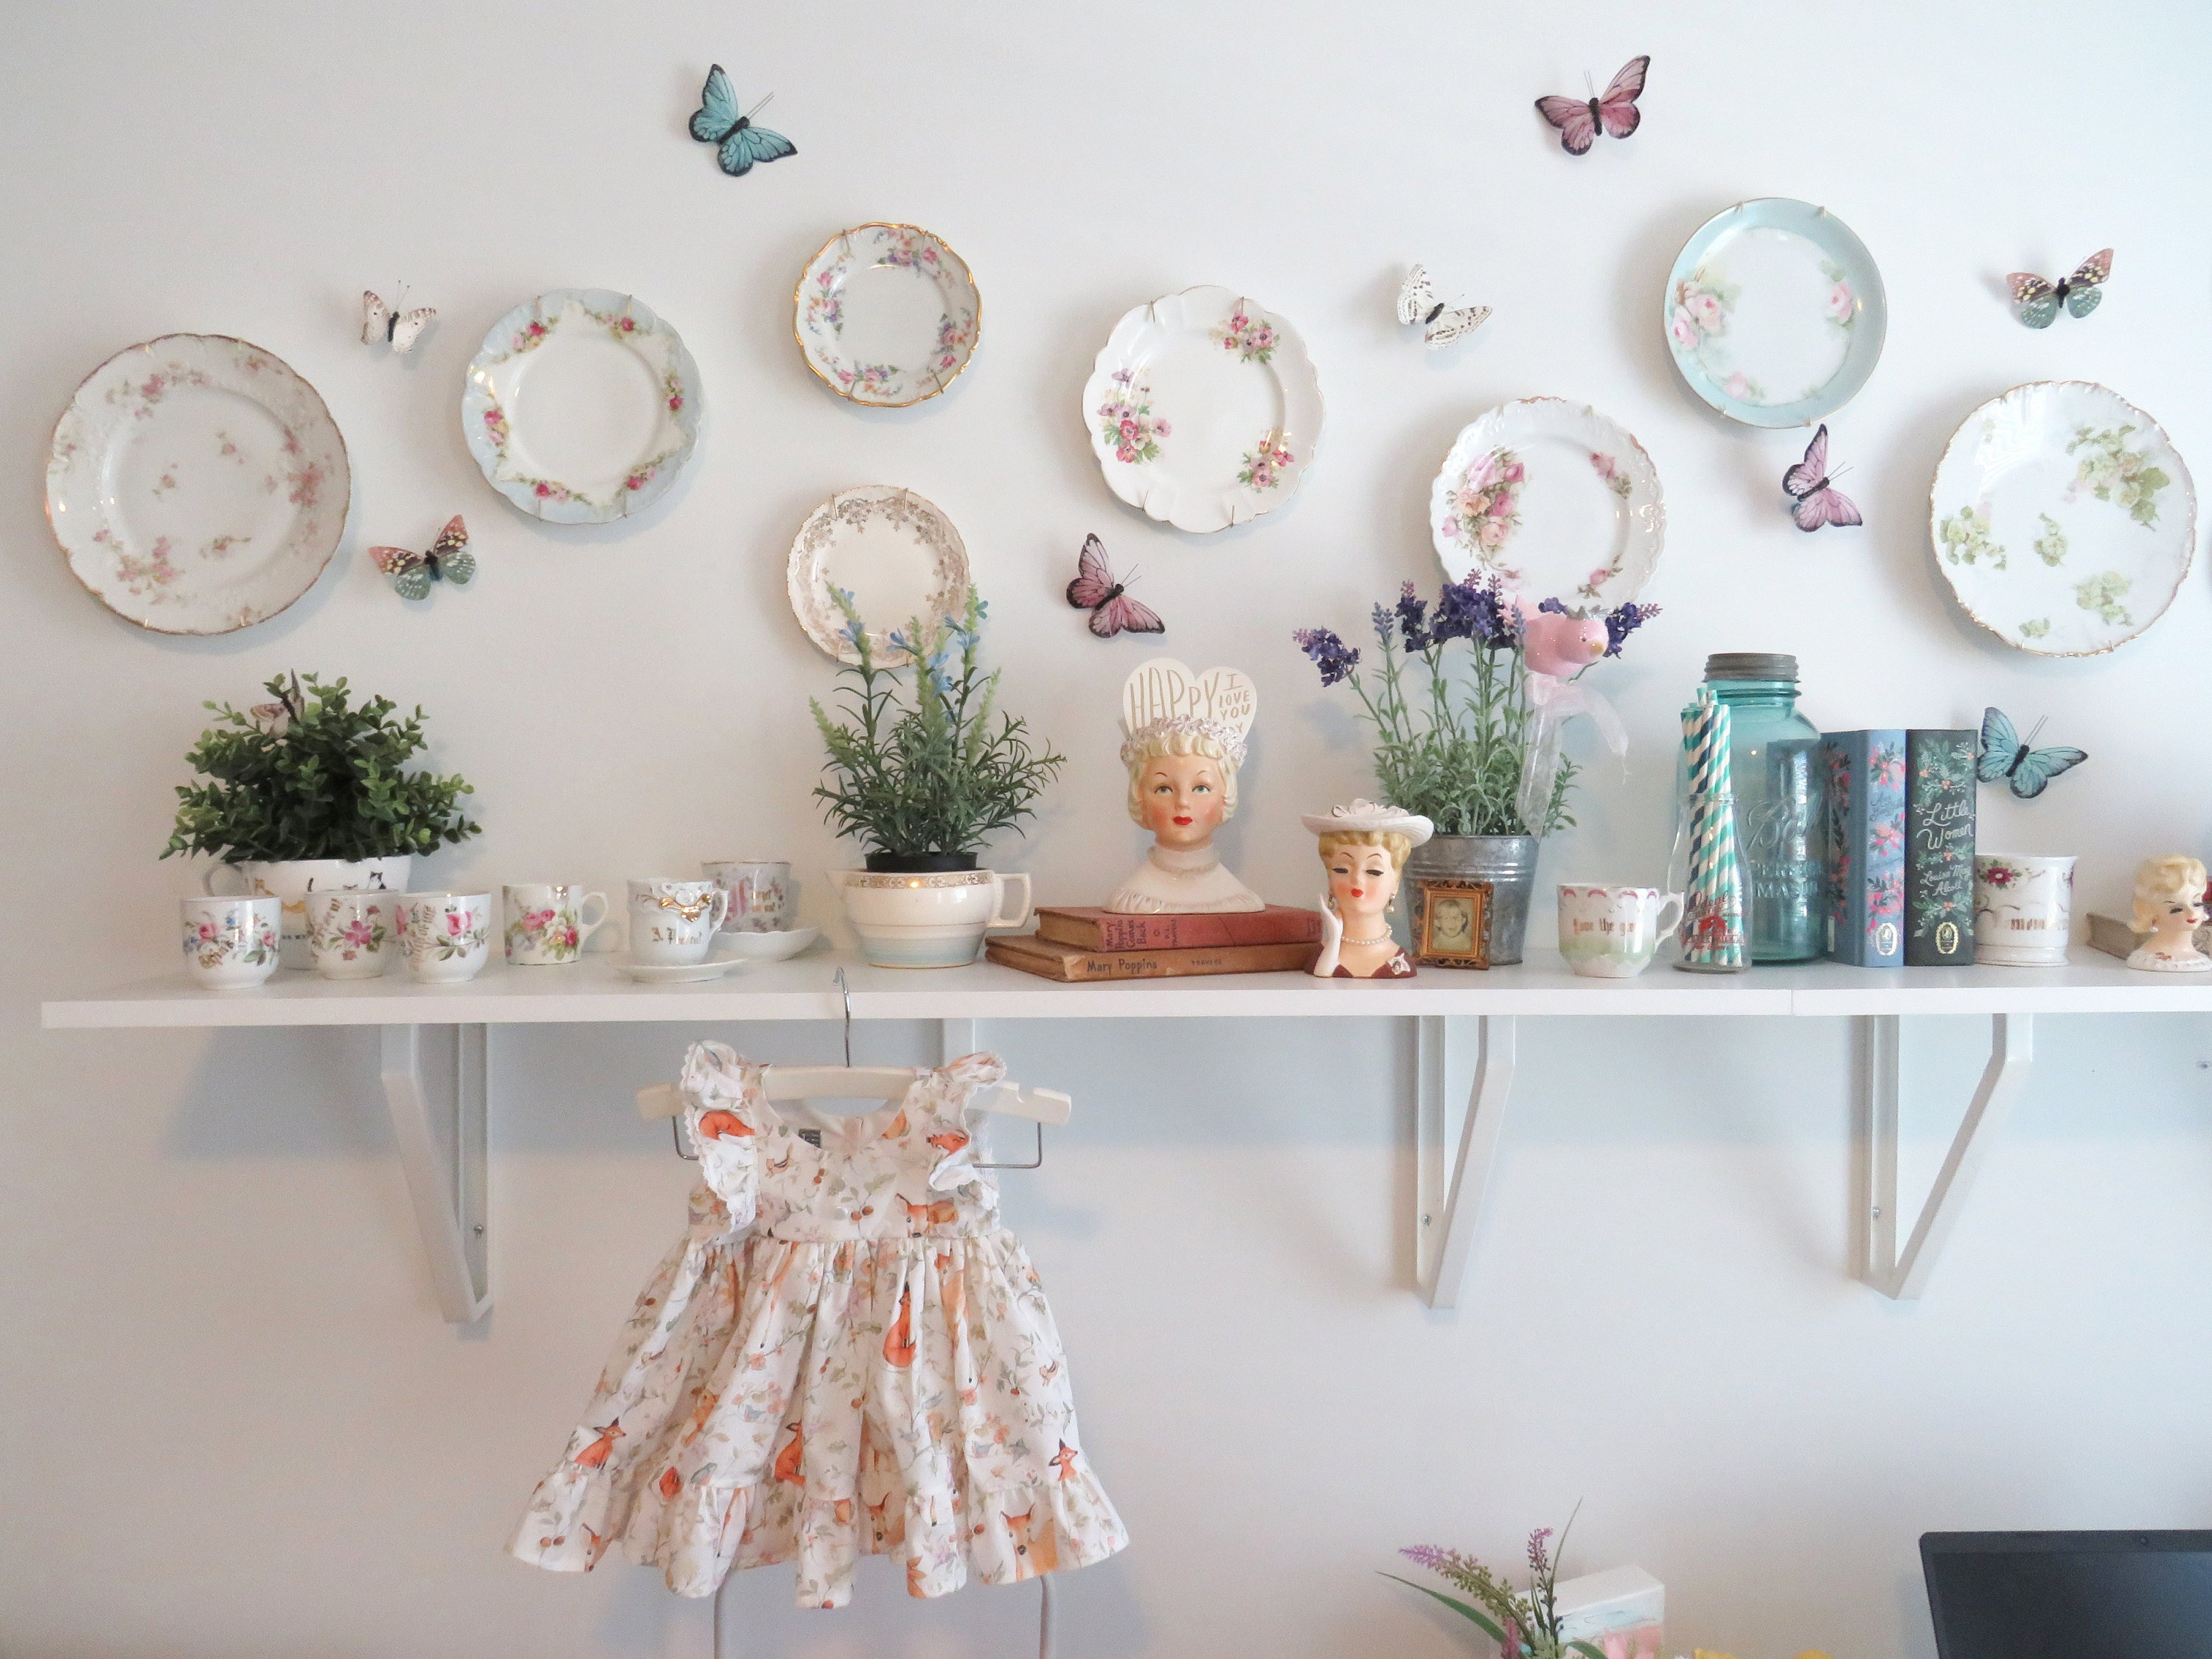 Wall decor with butterflies and baby dress